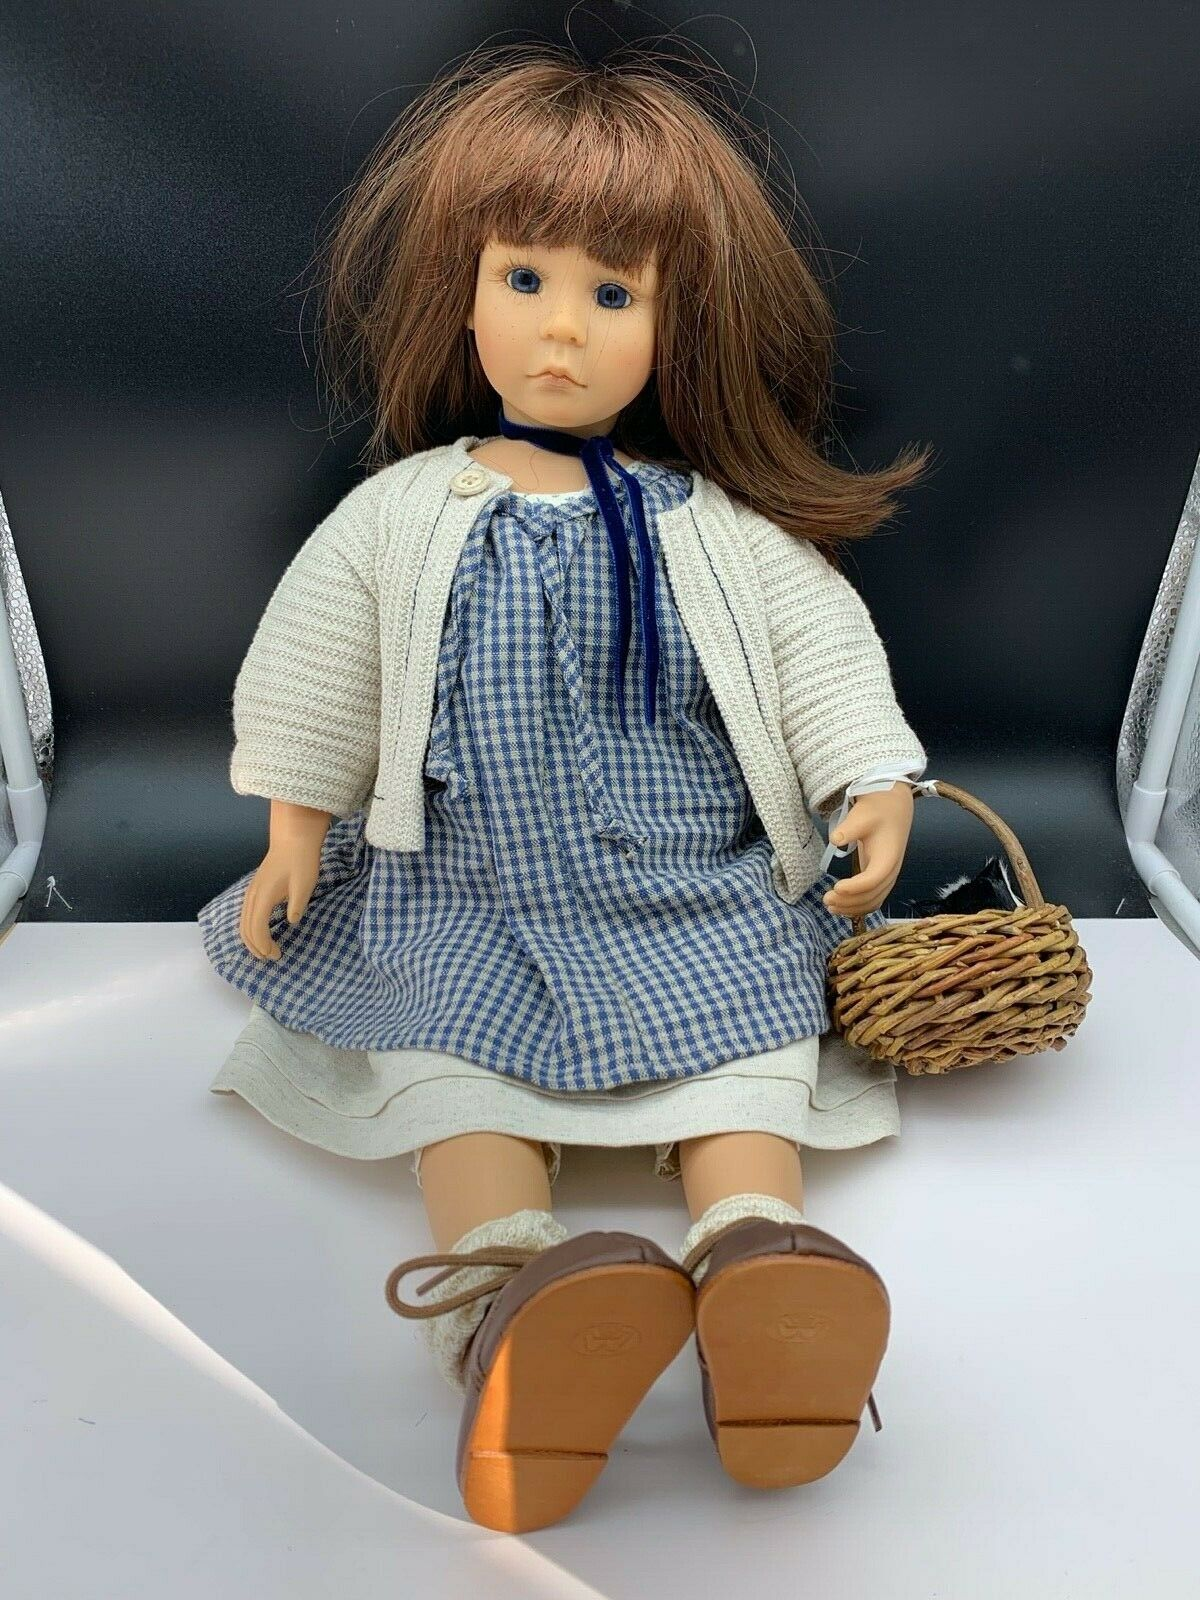 Bettina Feigenspan Stag Vinyl Doll 54 Cm. Top Condition